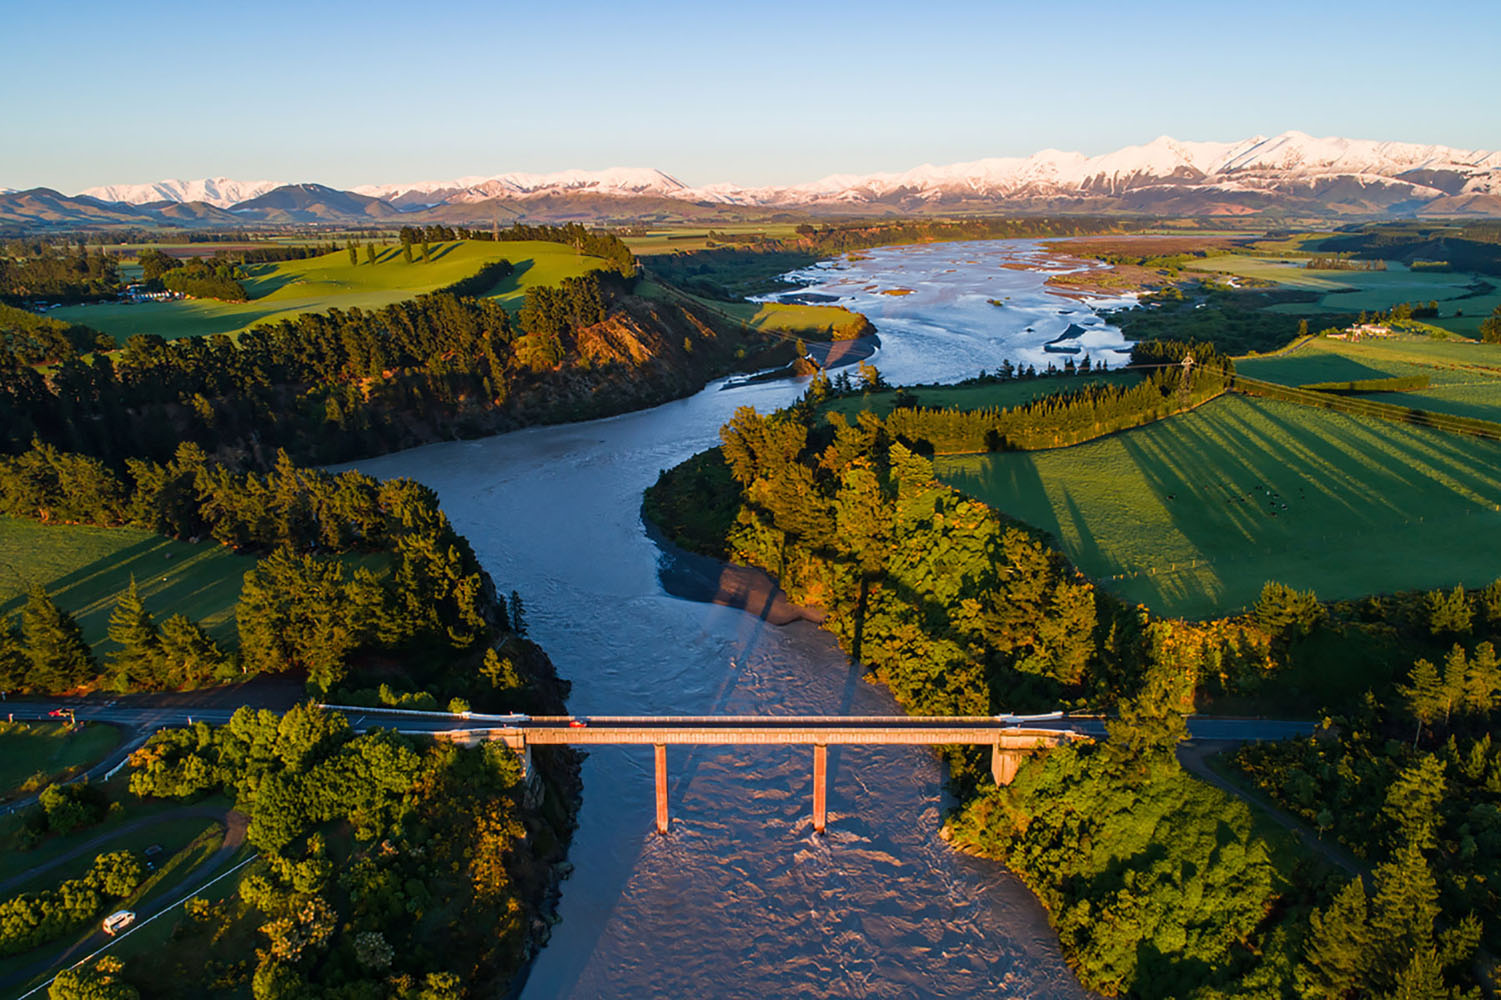 Early sunlight over Waimakariri River